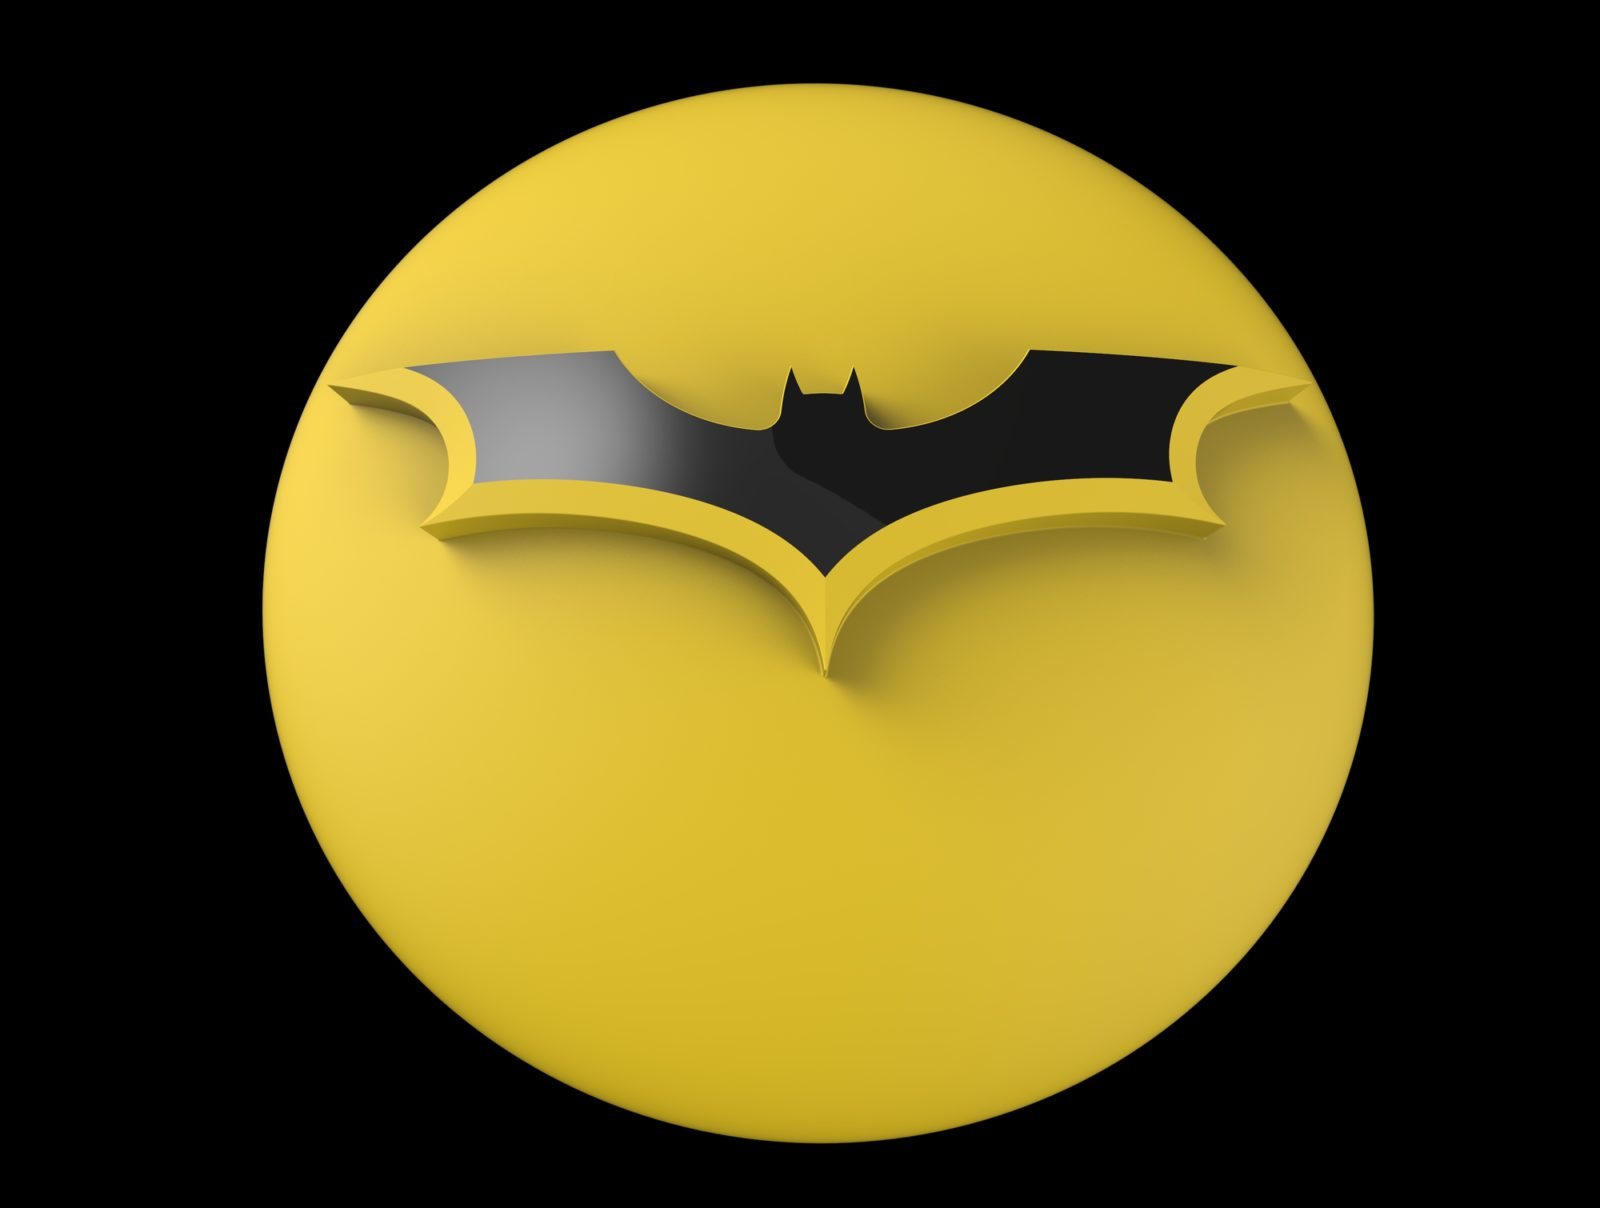 Creative Event Themes: The Batcave